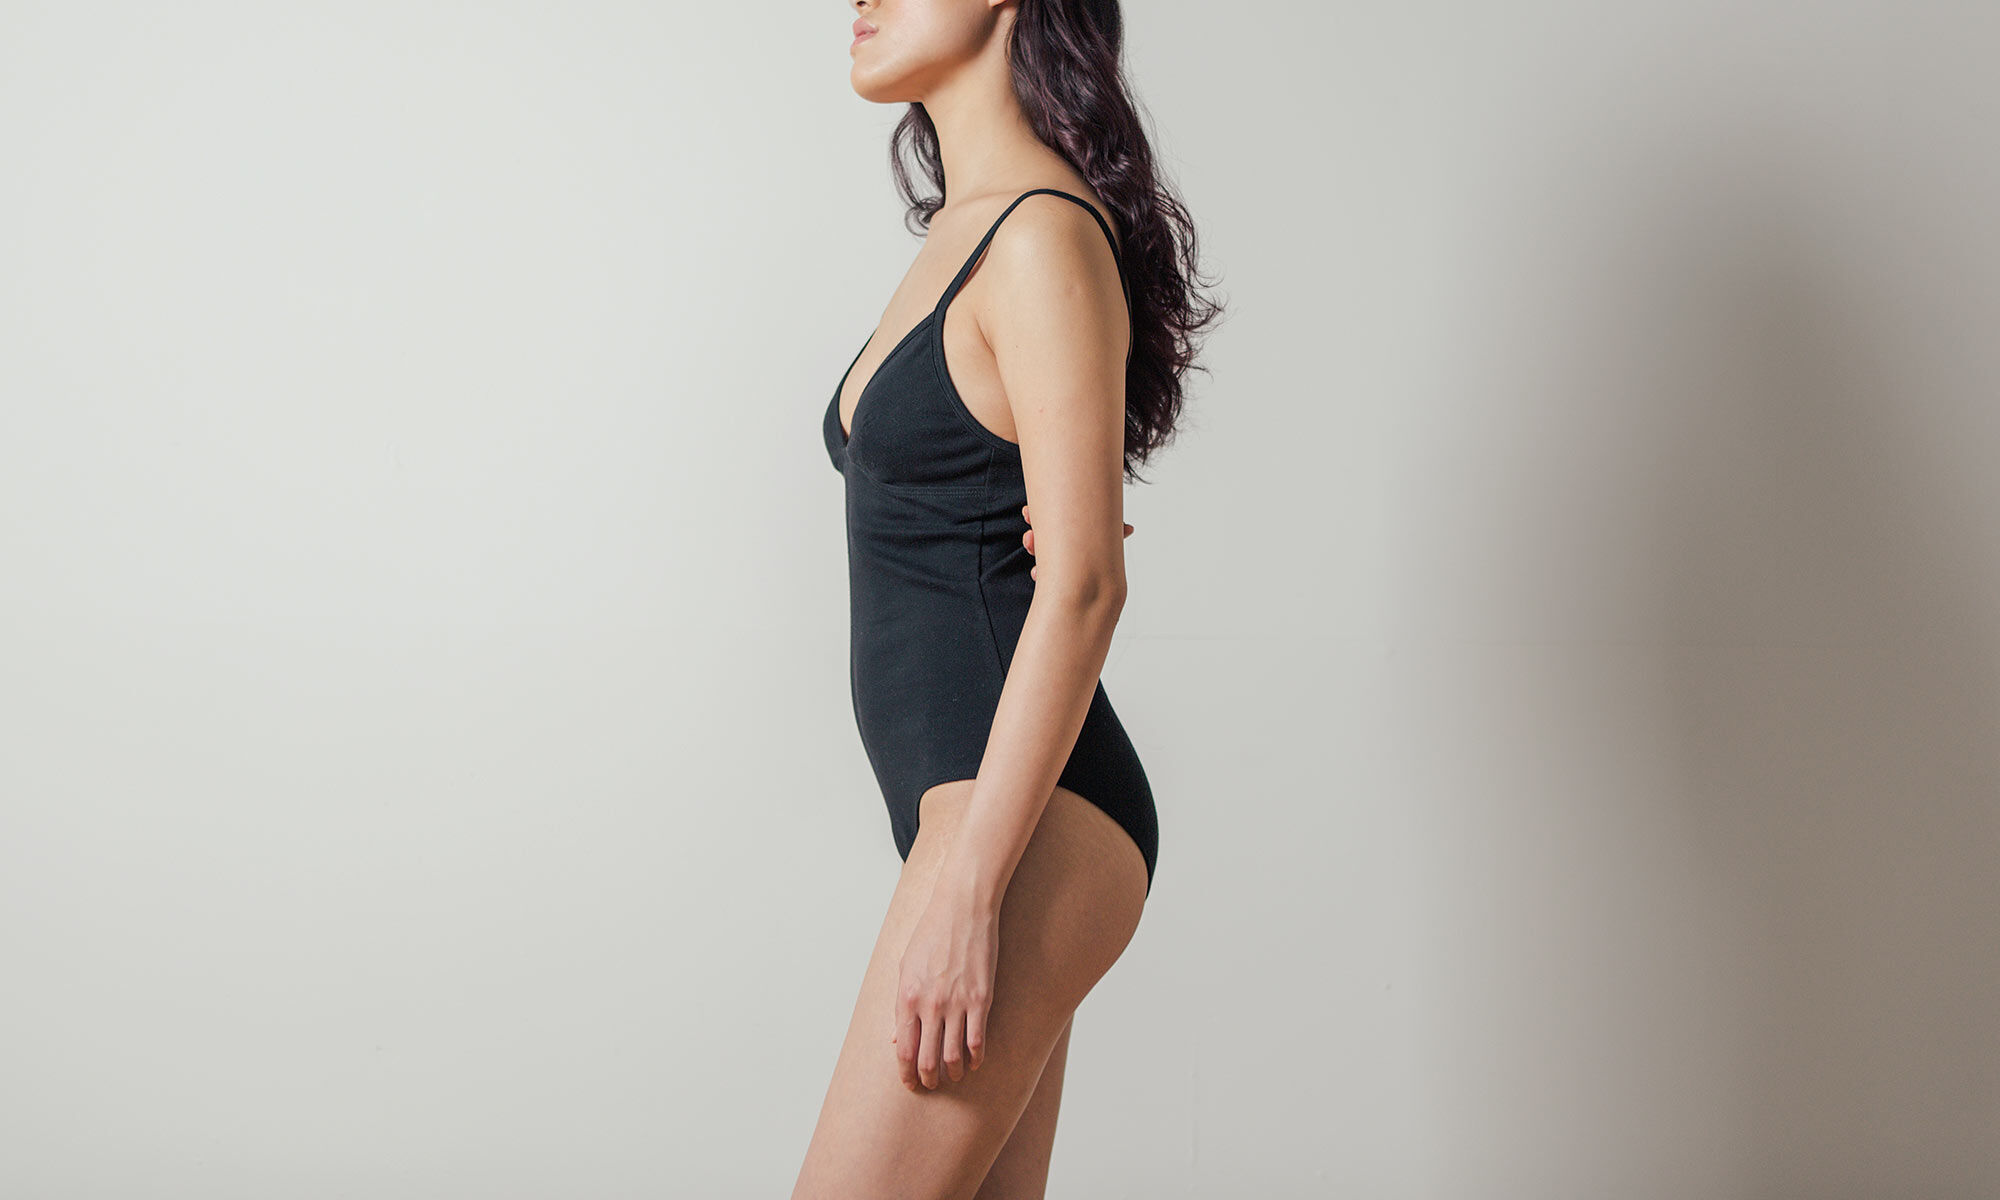 Hina Bodysuit in Black by Botanica Workshop